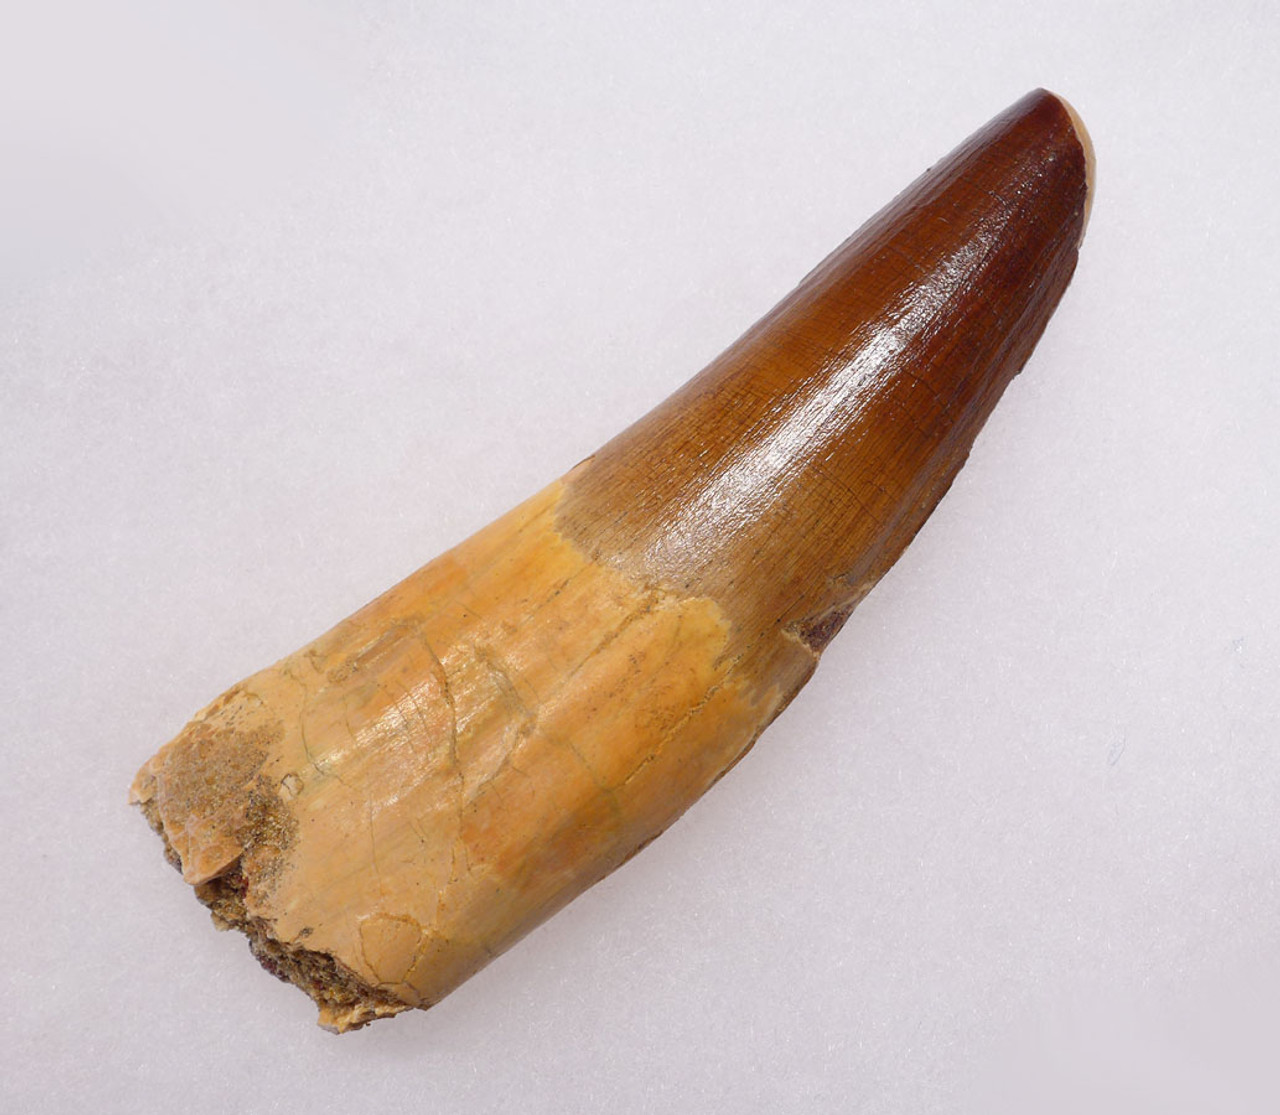 DT5-167 - EXTREMELY RARE UNBROKEN 4.5 INCH SPINOSAURUS TOOTH FROM ENORMOUS DINOSAUR